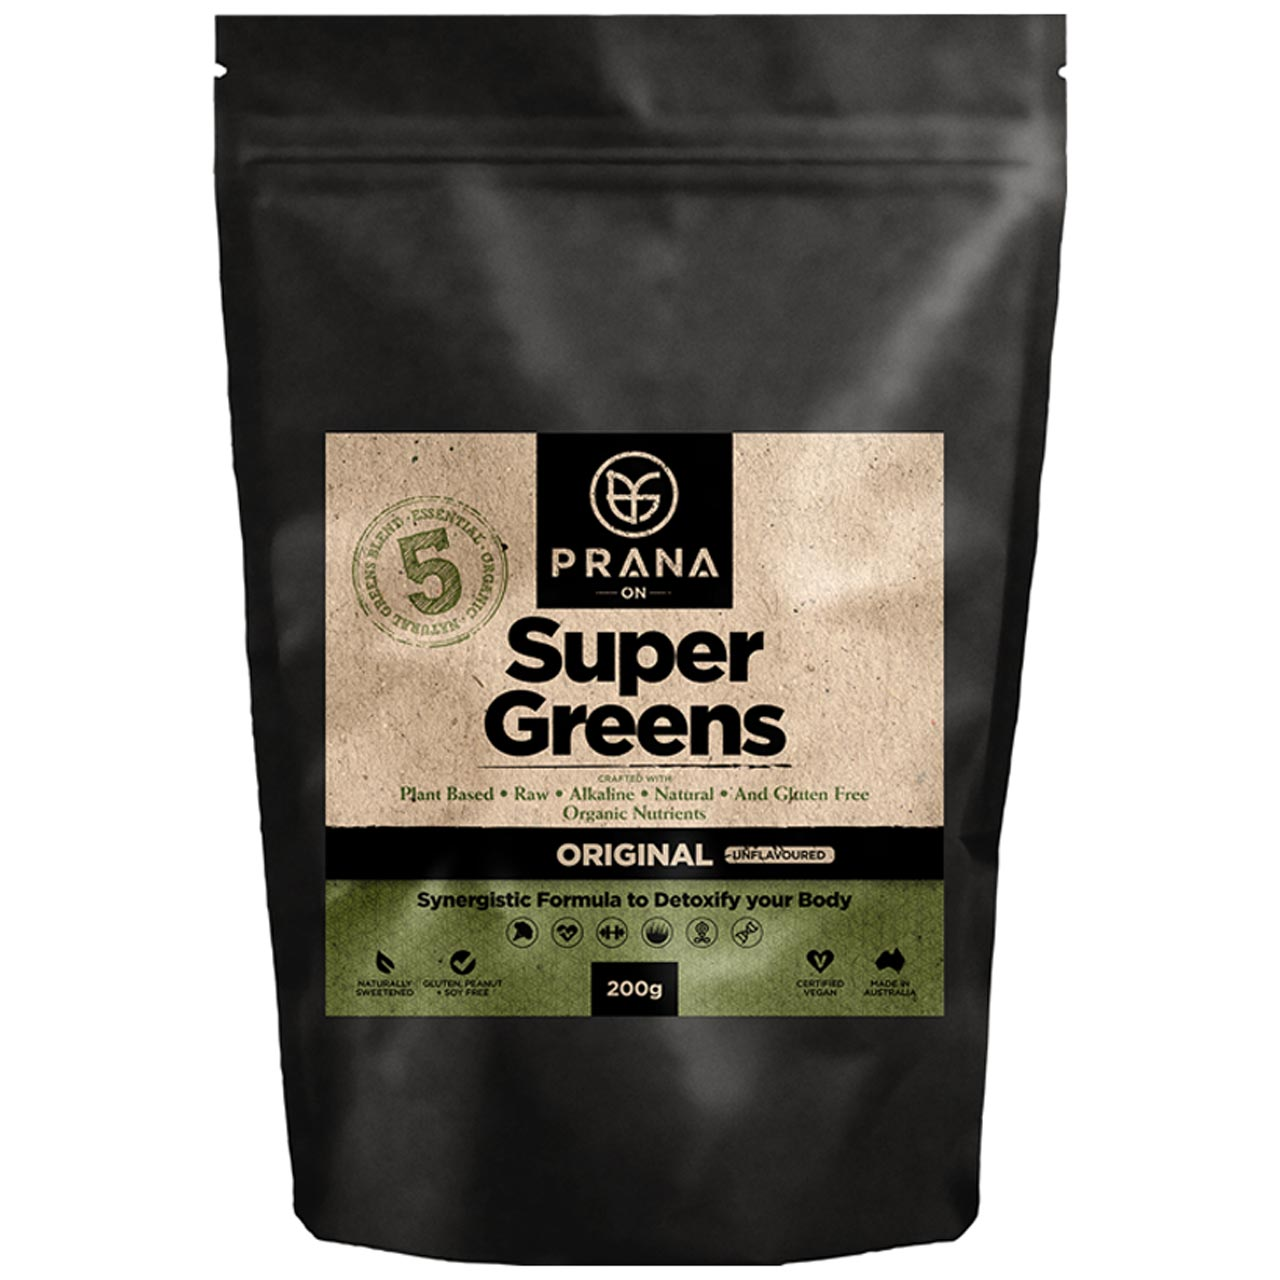 Prana Super Greens - Original